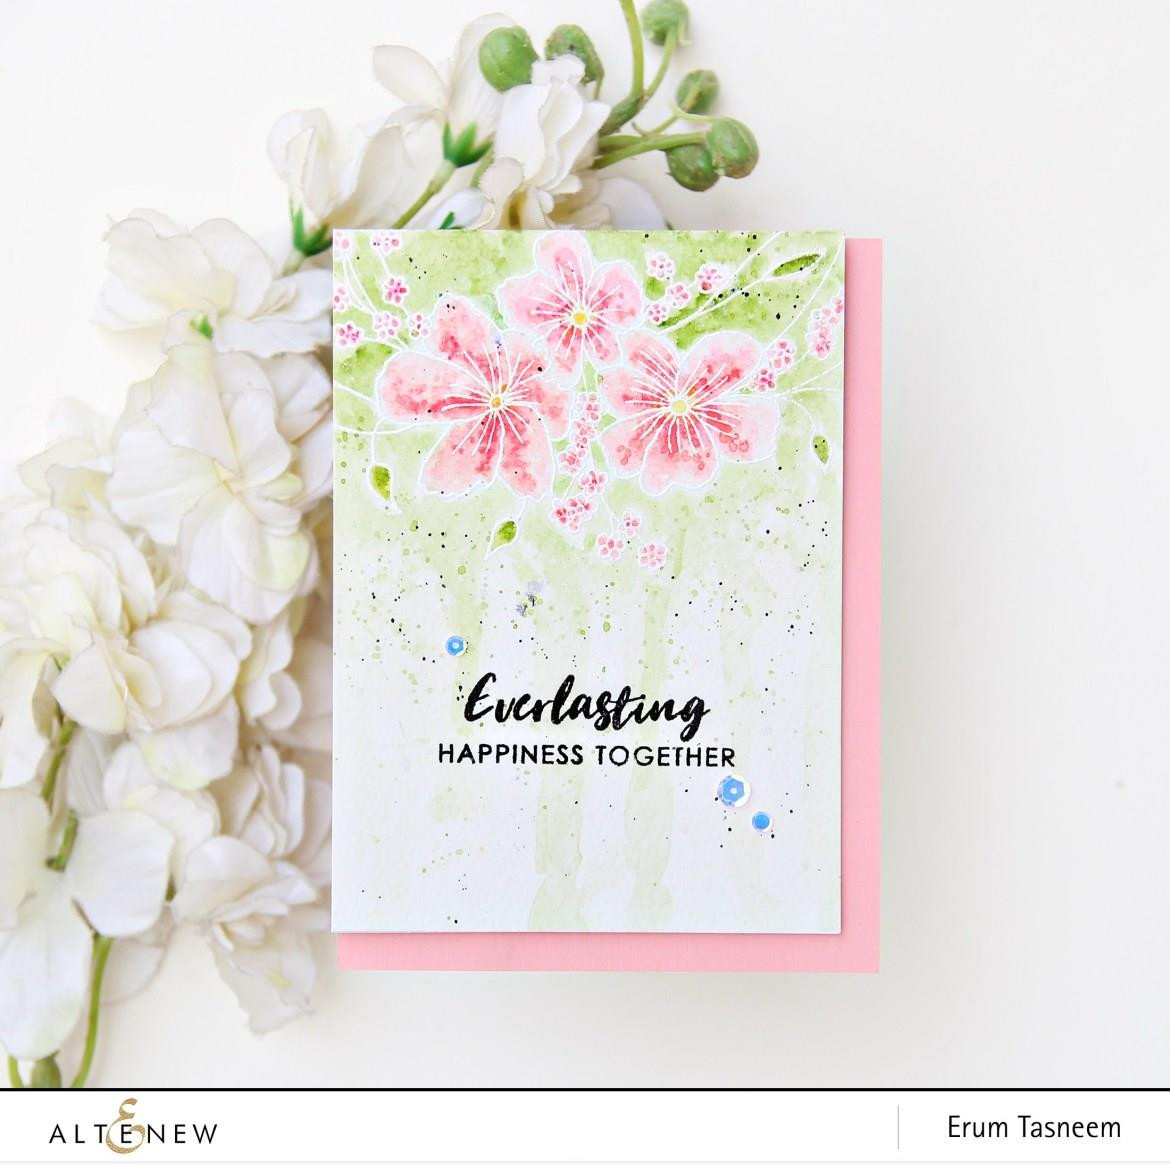 Everlasting Happiness, Altenew Clear Stamps - 7.04831E+111